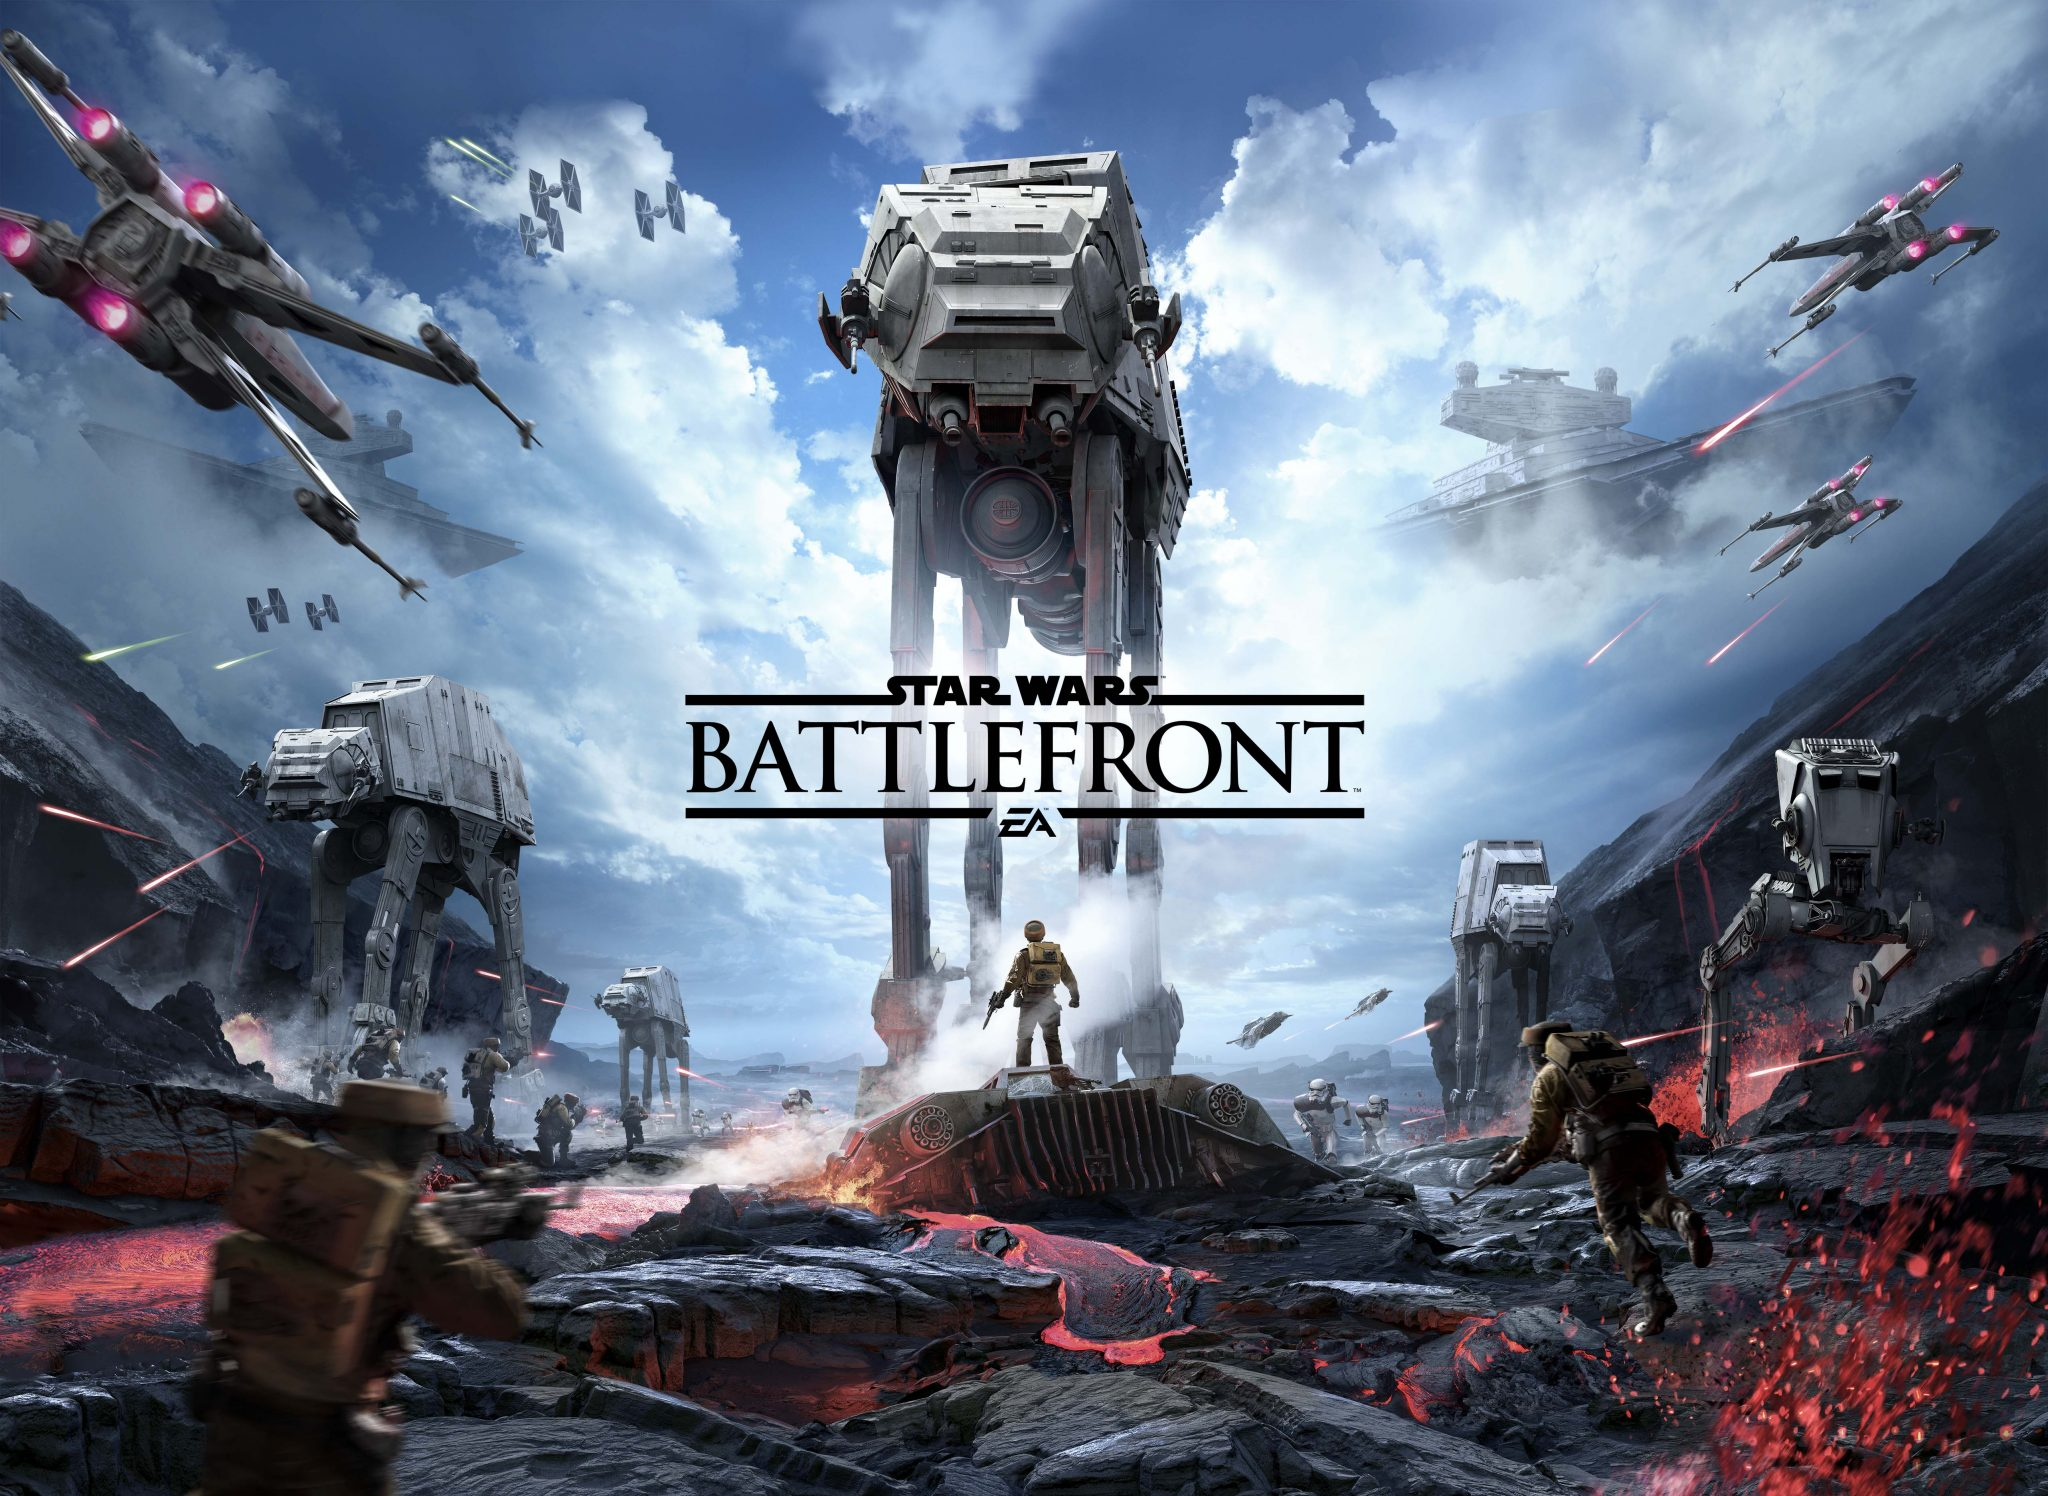 ResortLoop.com Episode 274 – Star Wars Battlefront Review